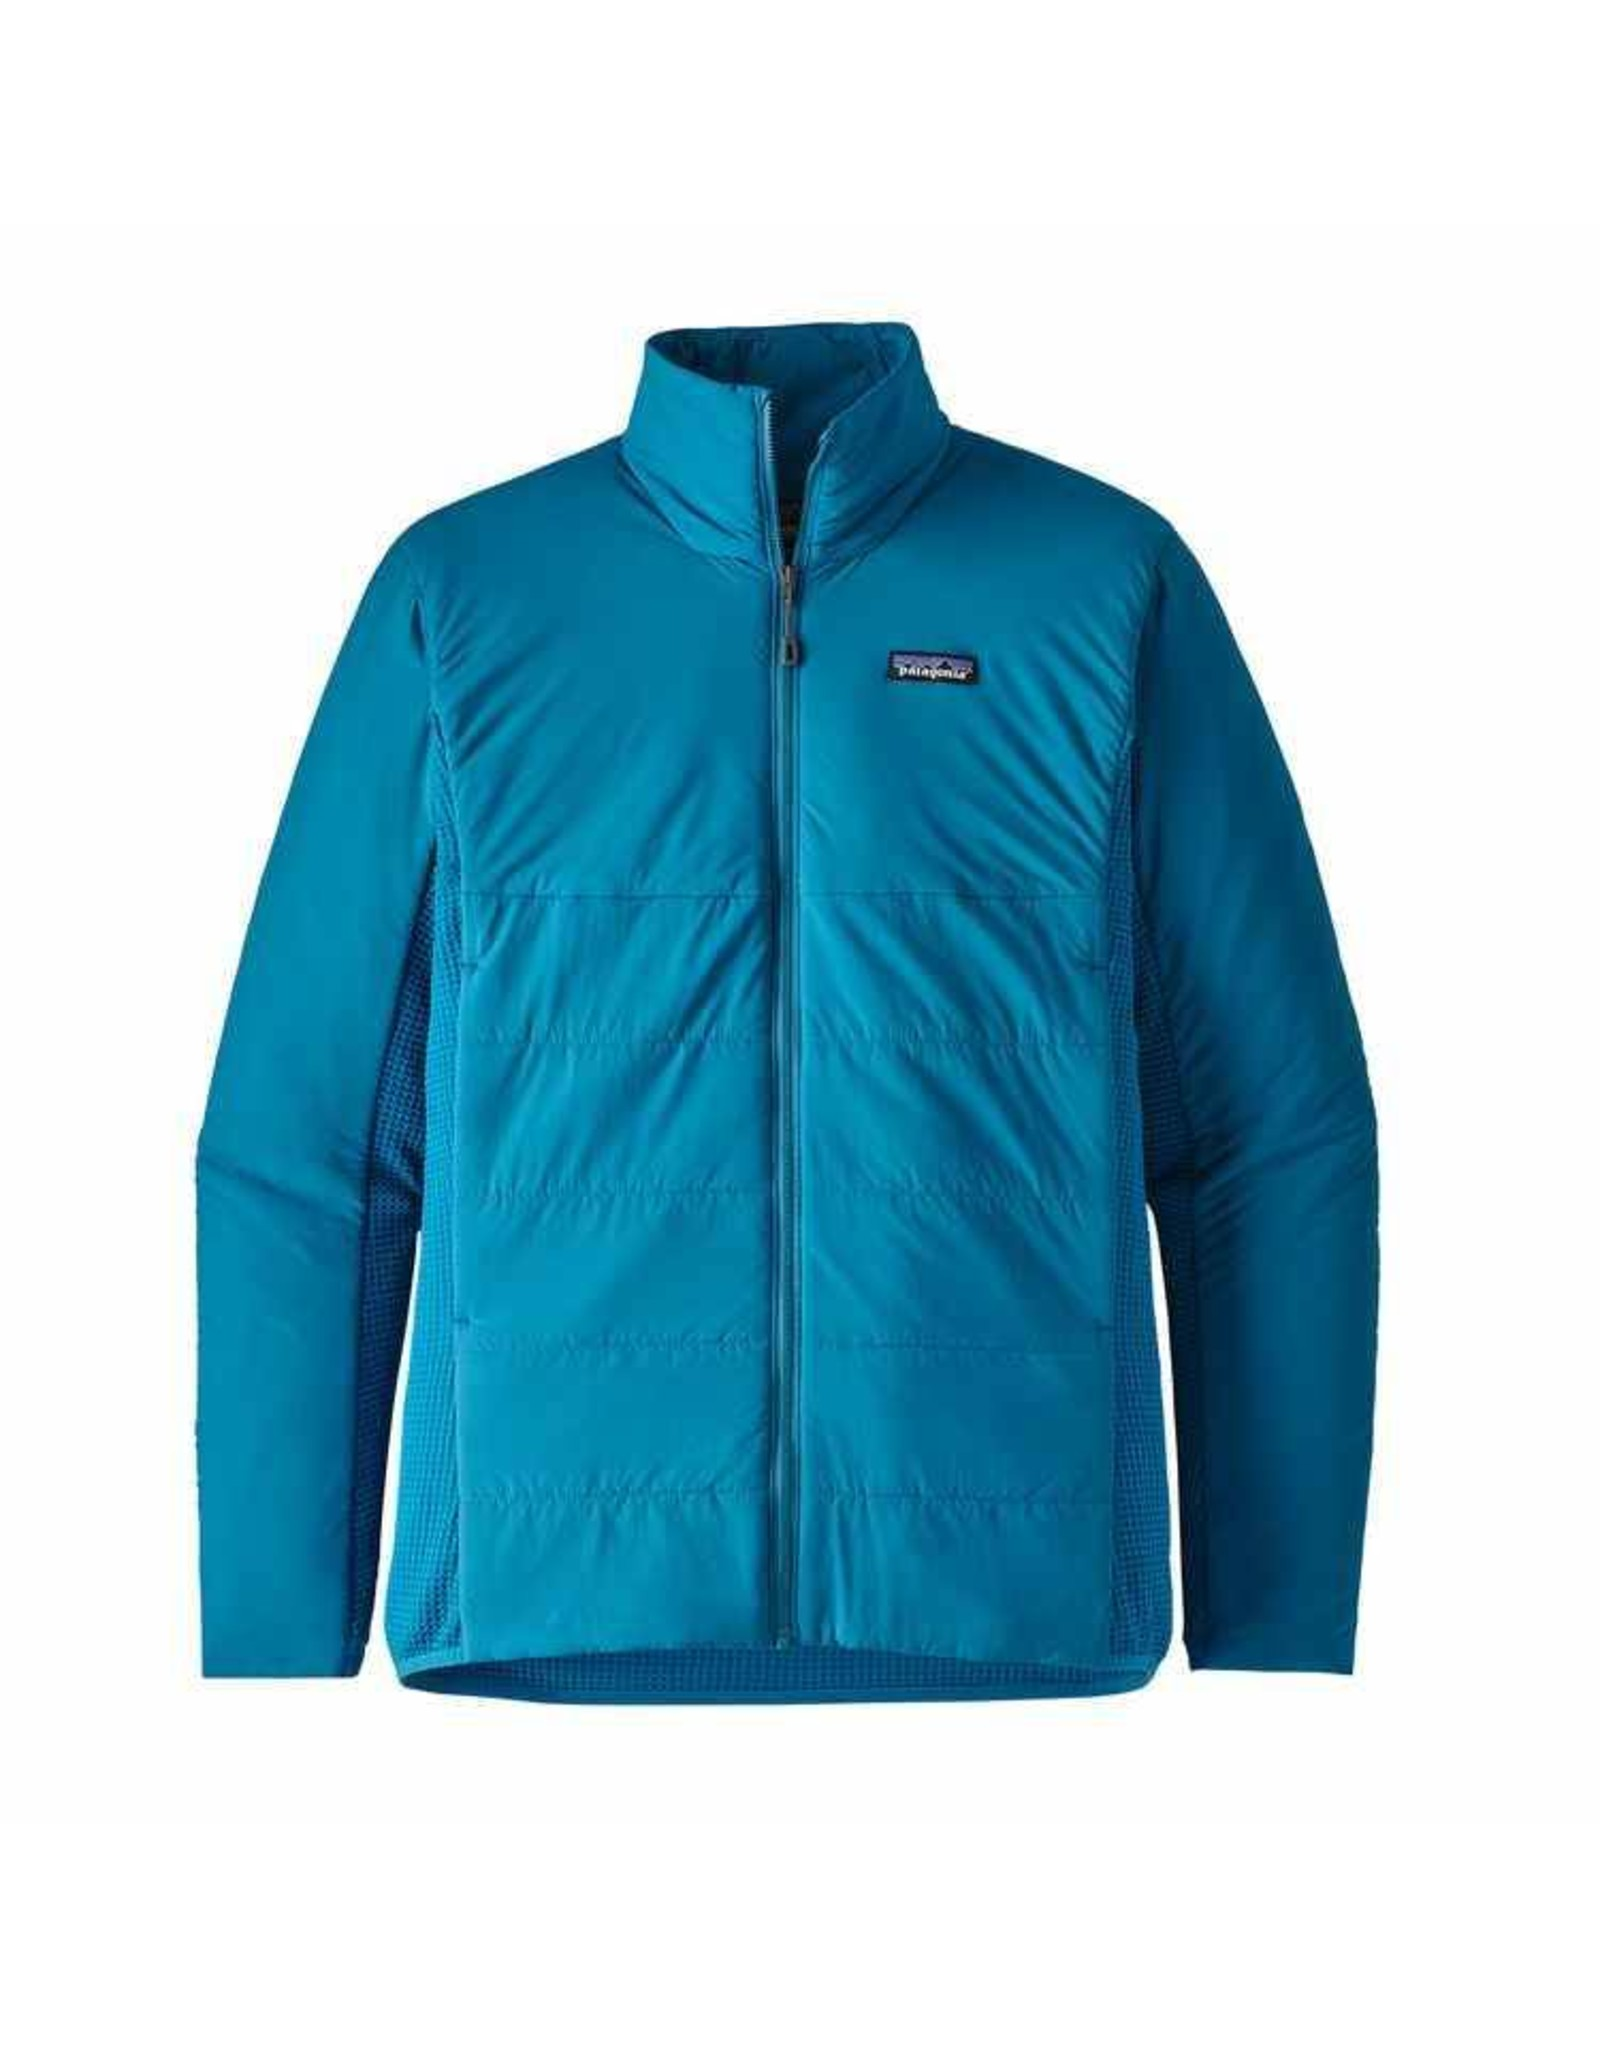 Patagonia Patagonia Men's Nano-Air Light Hybrid Jacket